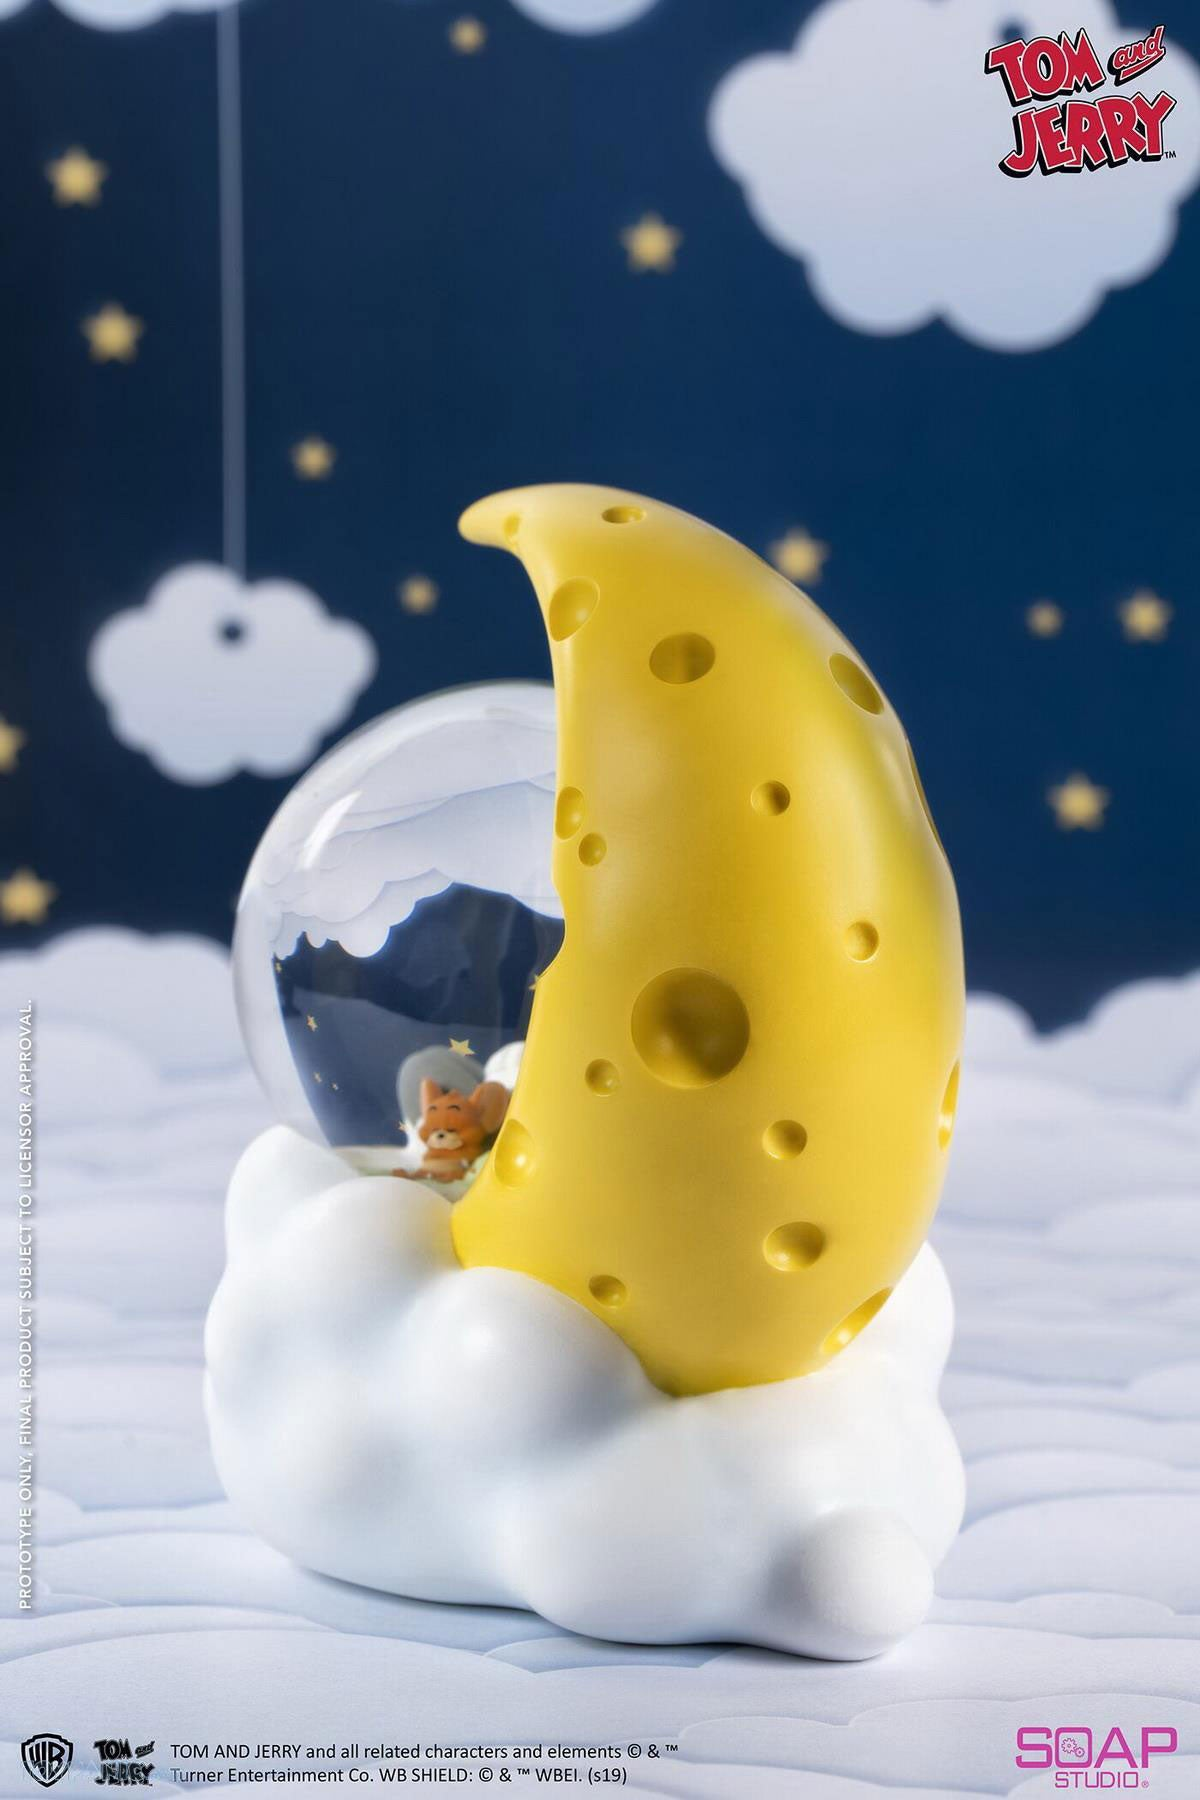 Soap Studio - Tom and Jerry - Cheese Moon Snow Globe (Reissue)